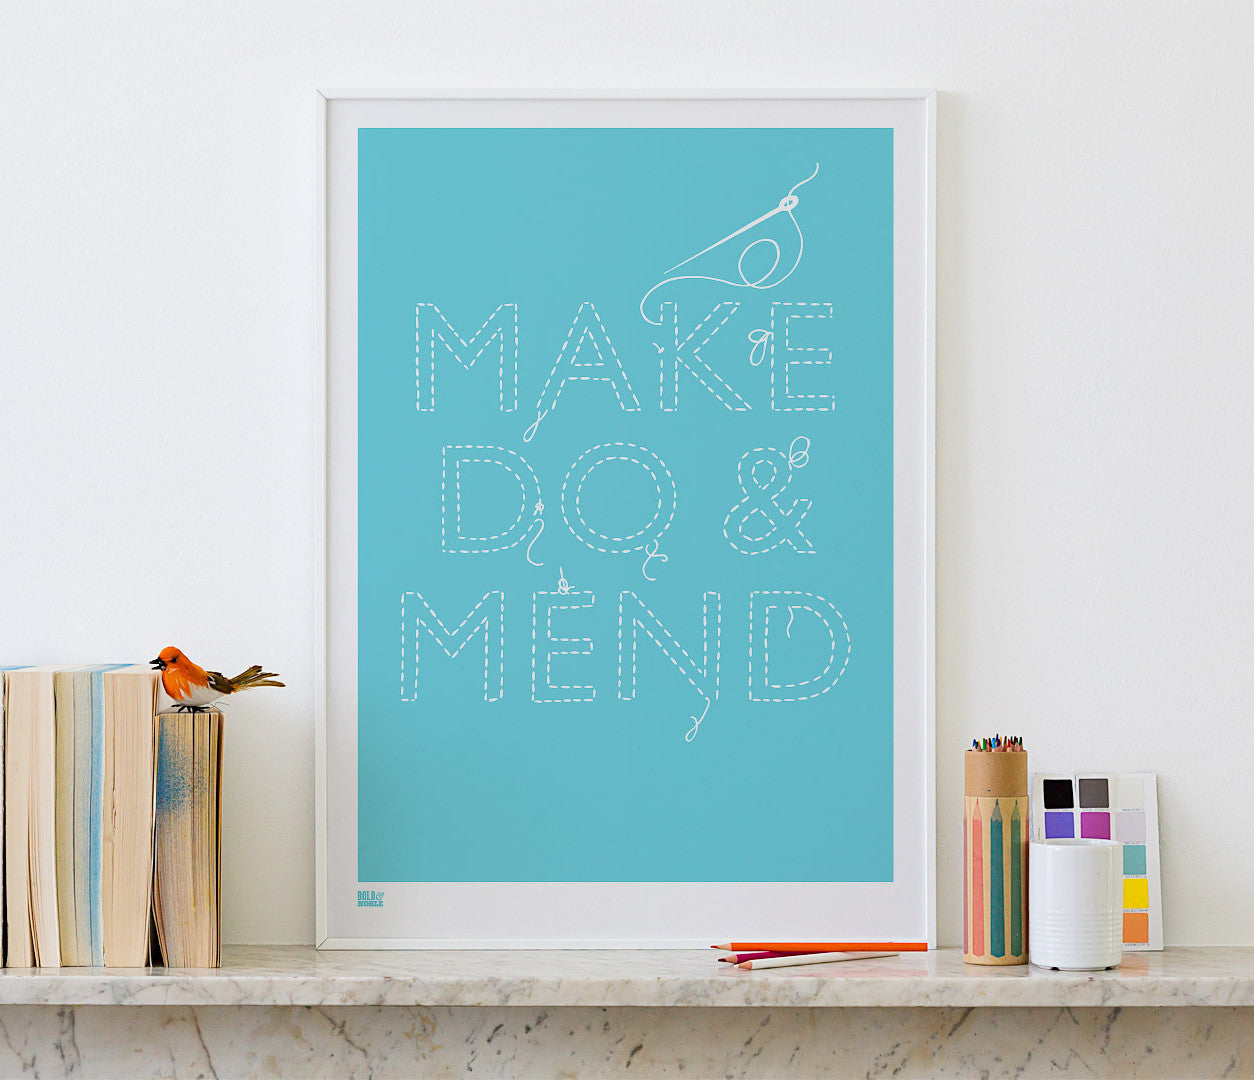 Pictures and Wall Art, Screen Printed Make do and Mend printed in Azure Blue